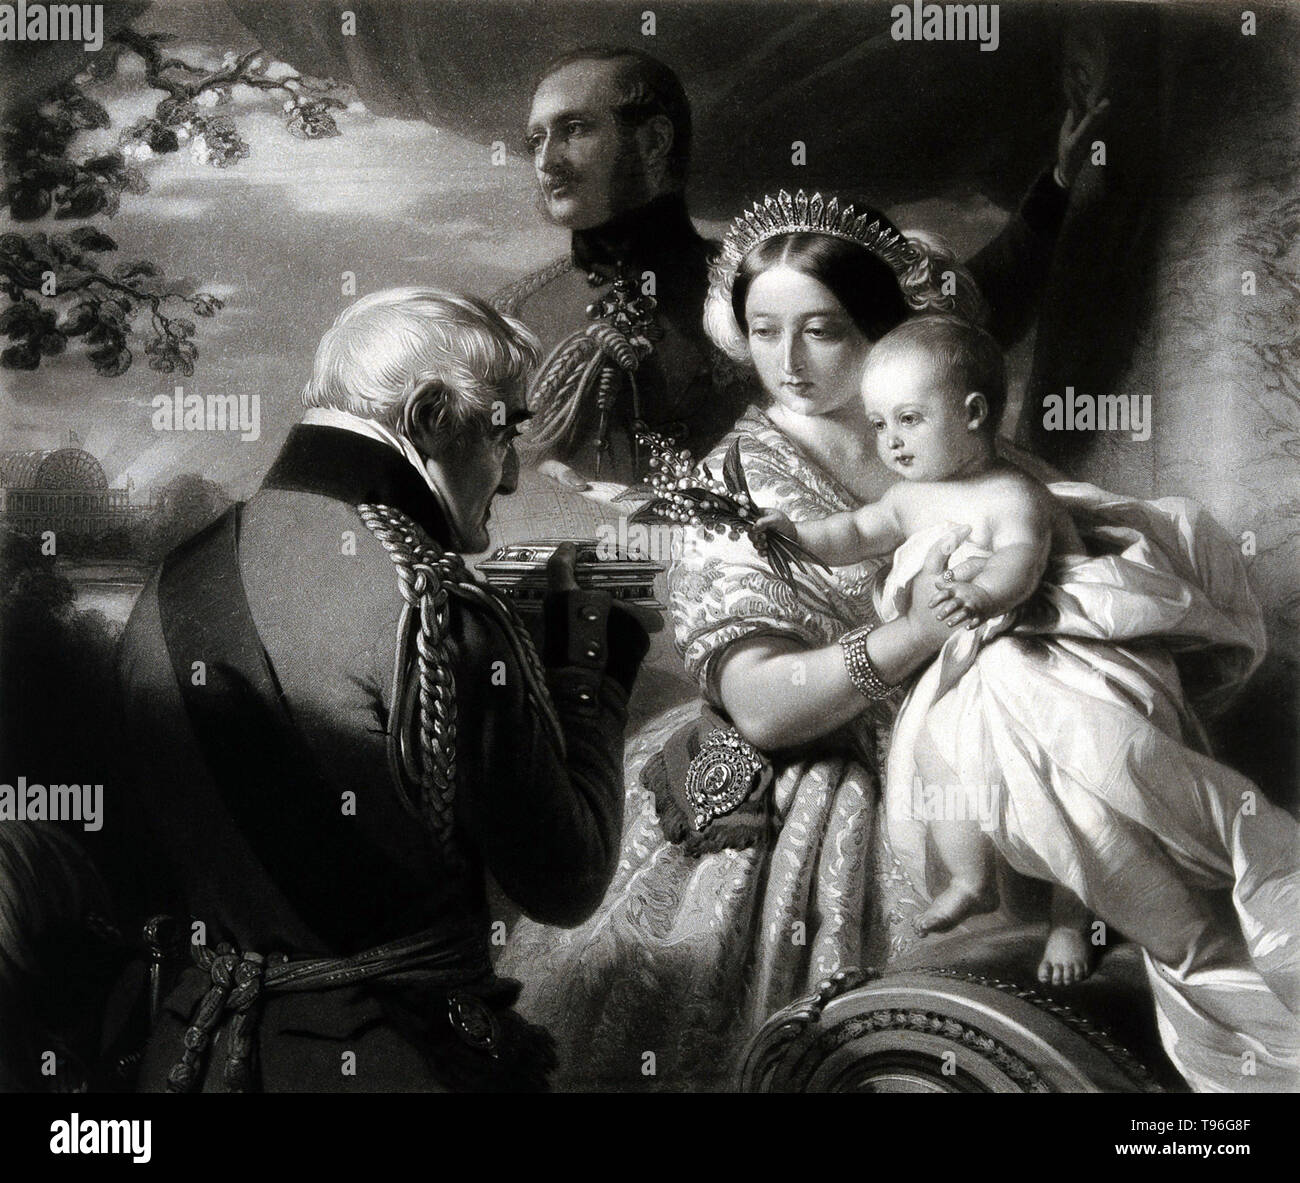 The Duke of Wellington is presenting a birthday casket to his godson Prince Arthur in the presence of Queen Victoria and Prince Albert. Arthur Wellesley, 1st Duke of Wellington (May 1, 1769 - September 14, 1852), was an Anglo-Irish soldier and statesman. Wellesley rose to prominence as a general during the Peninsular campaign of the Napoleonic Wars, and was promoted to the rank of field marshal after leading the allied forces to victory against the French Empire at the Battle of Vitoria in 1813. Following Napoleon's exile in 1814, he served as the ambassador to France and was granted a dukedom - Stock Image